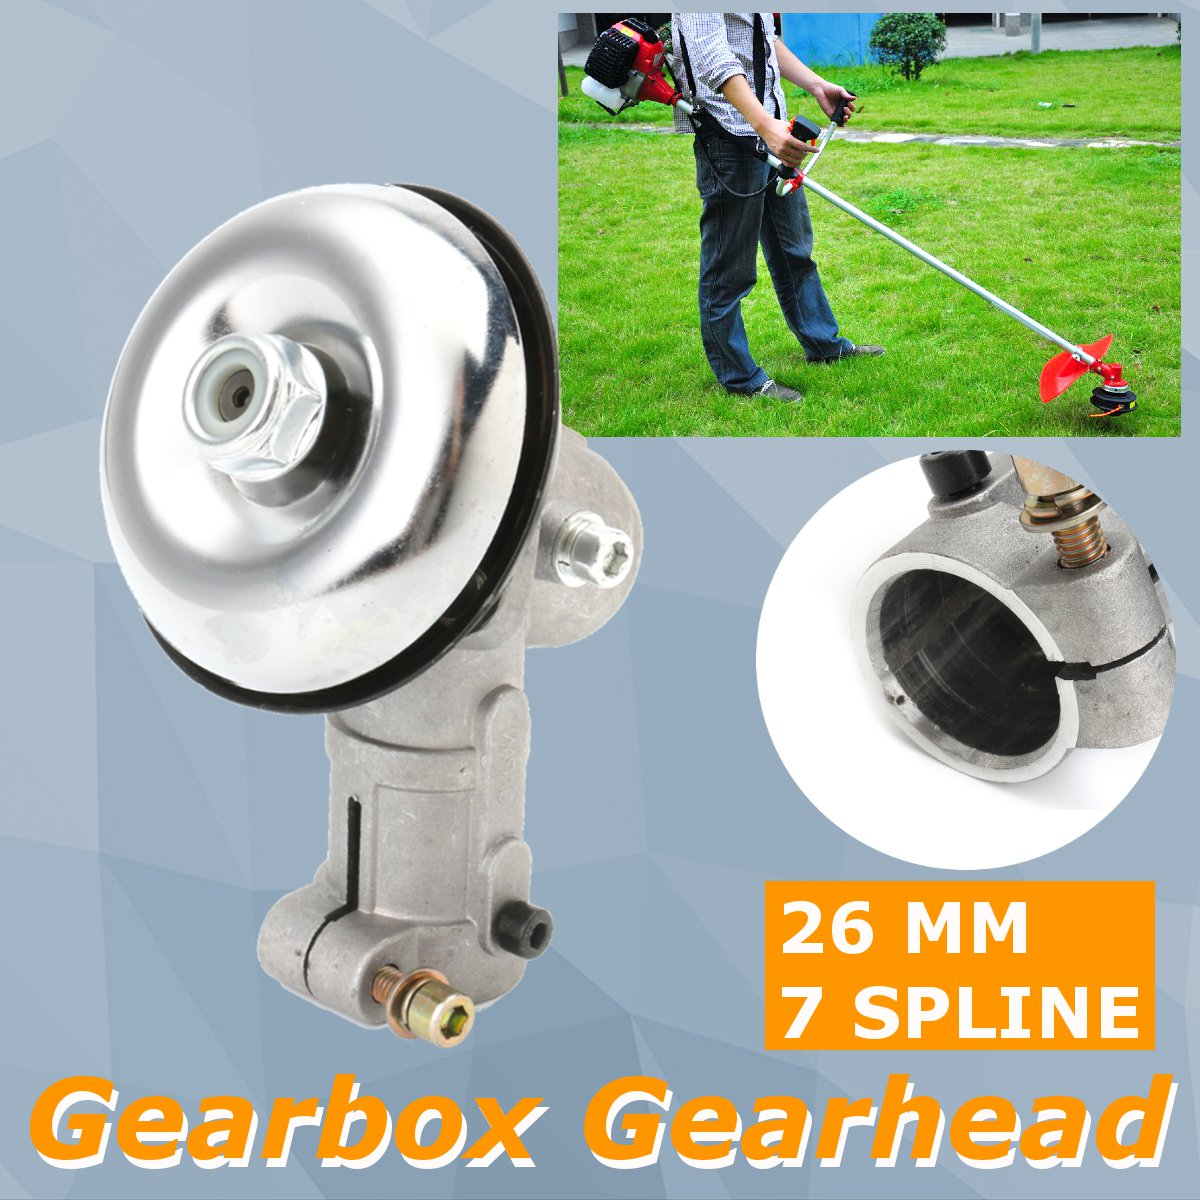 26mm 7 Spline Gearhead Gearbox For Trimmer Strimmer Brush Cutter Lawn Mower Fit Various Strimmer Trimmer Brush Cutter